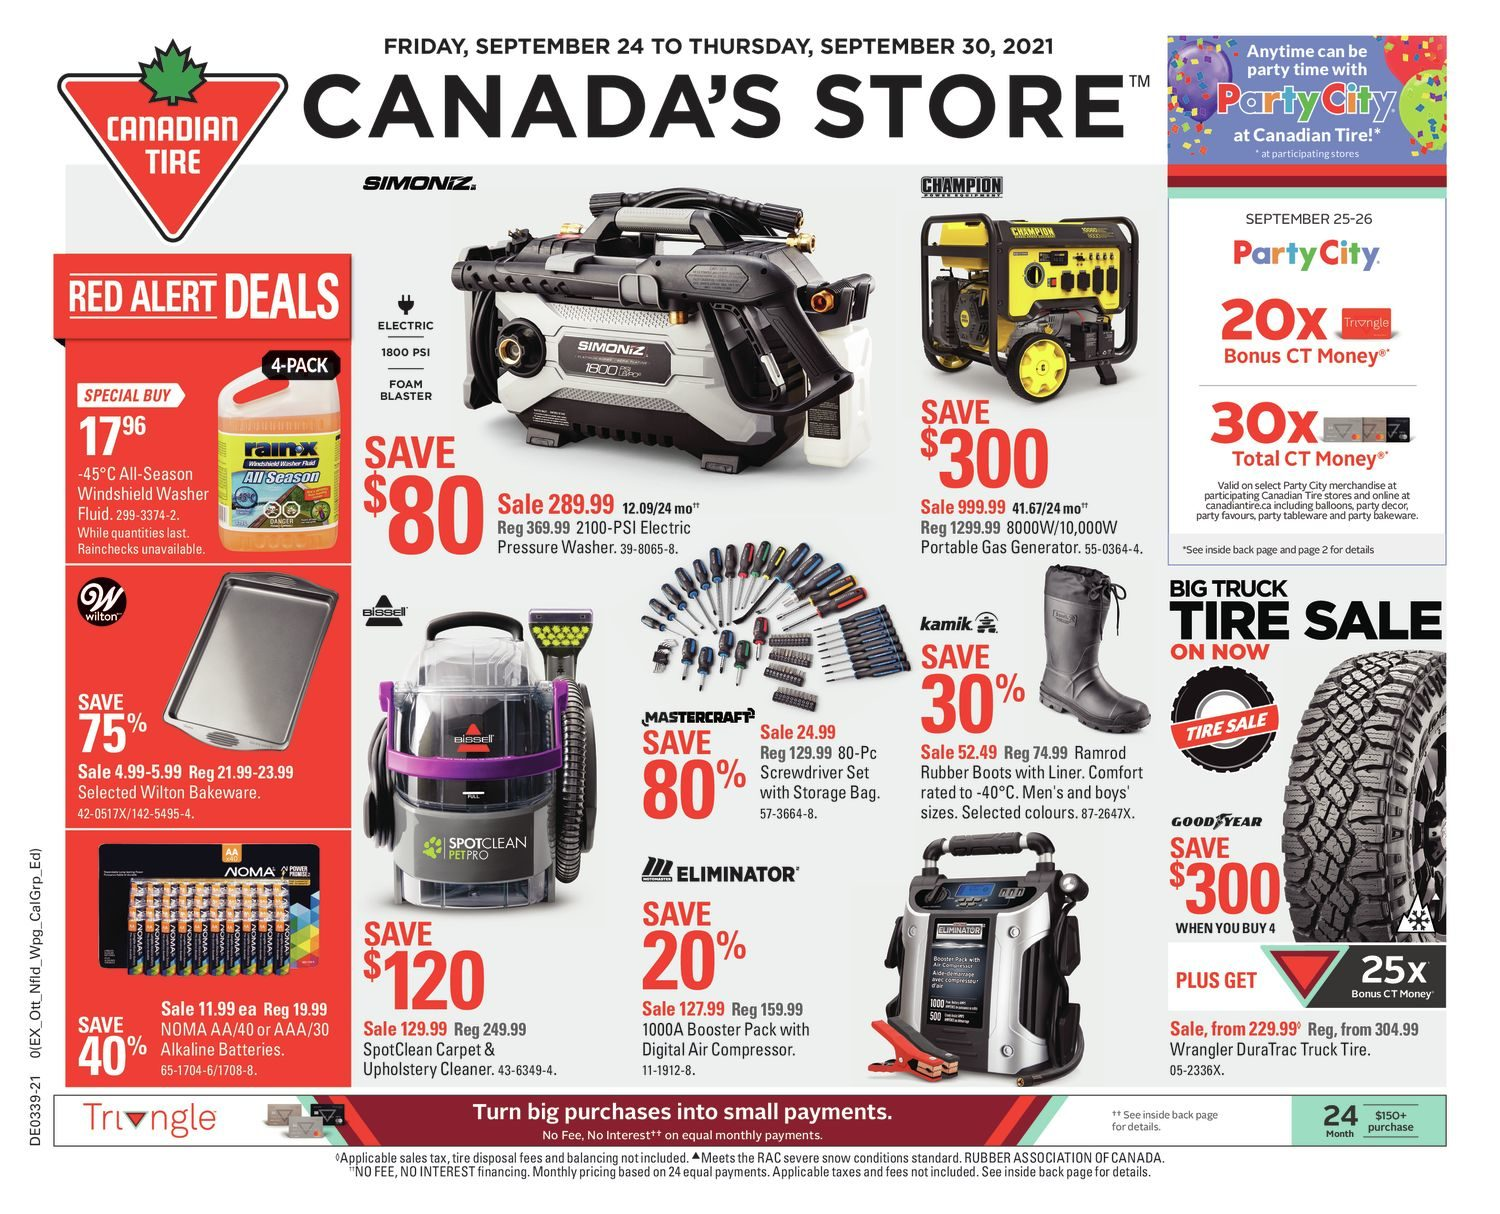 Canadian Tire - Weekly Flyer Specials